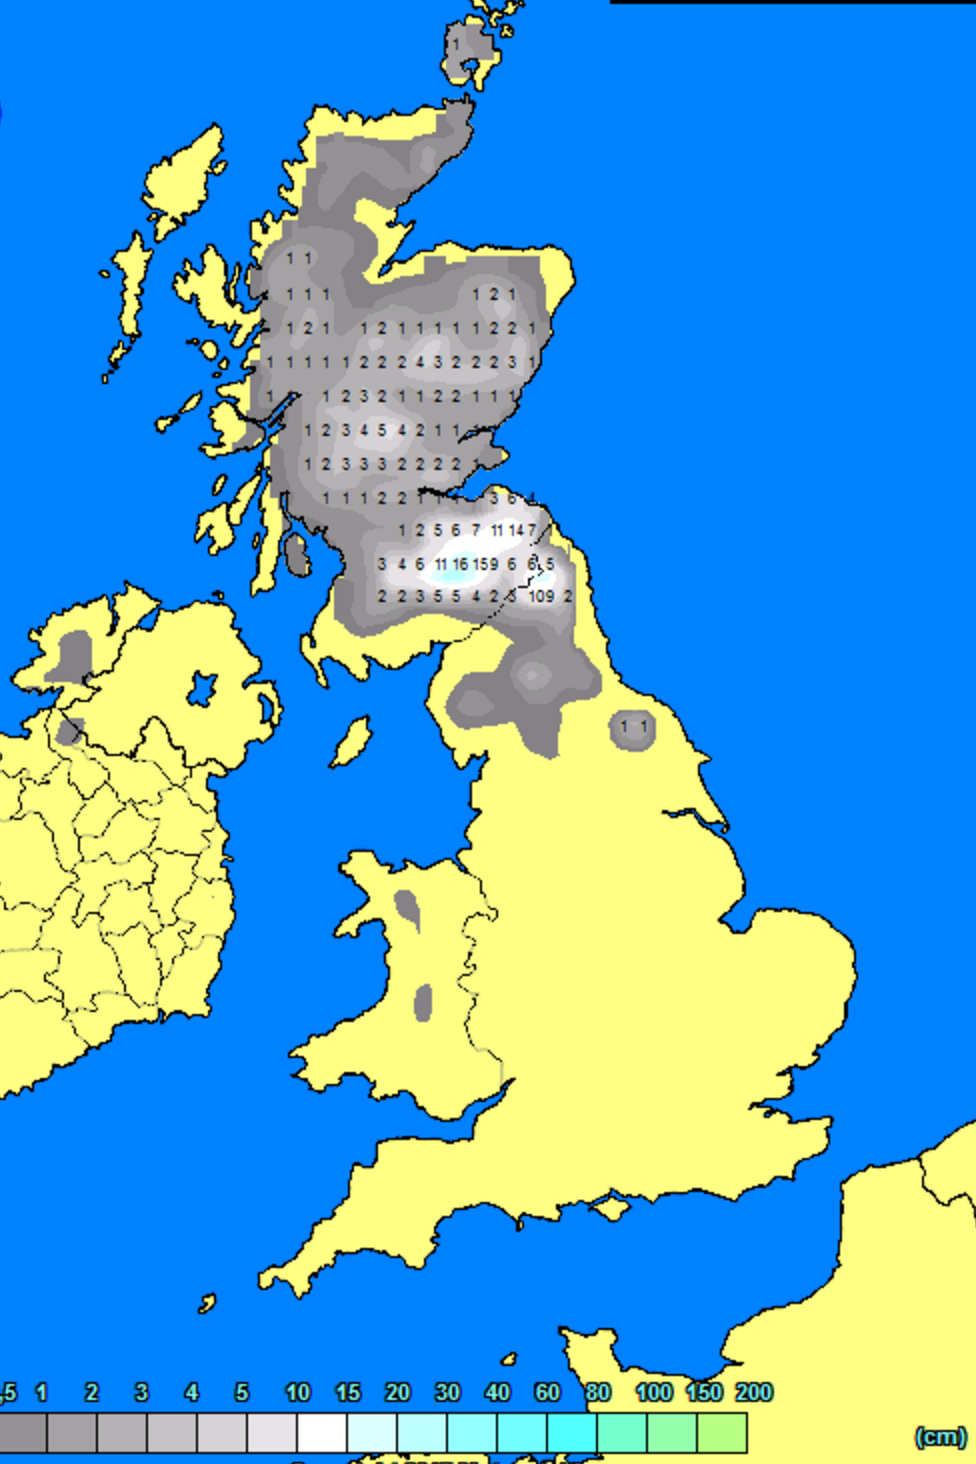 Storm doris live updates. Blizzard clipart weather map